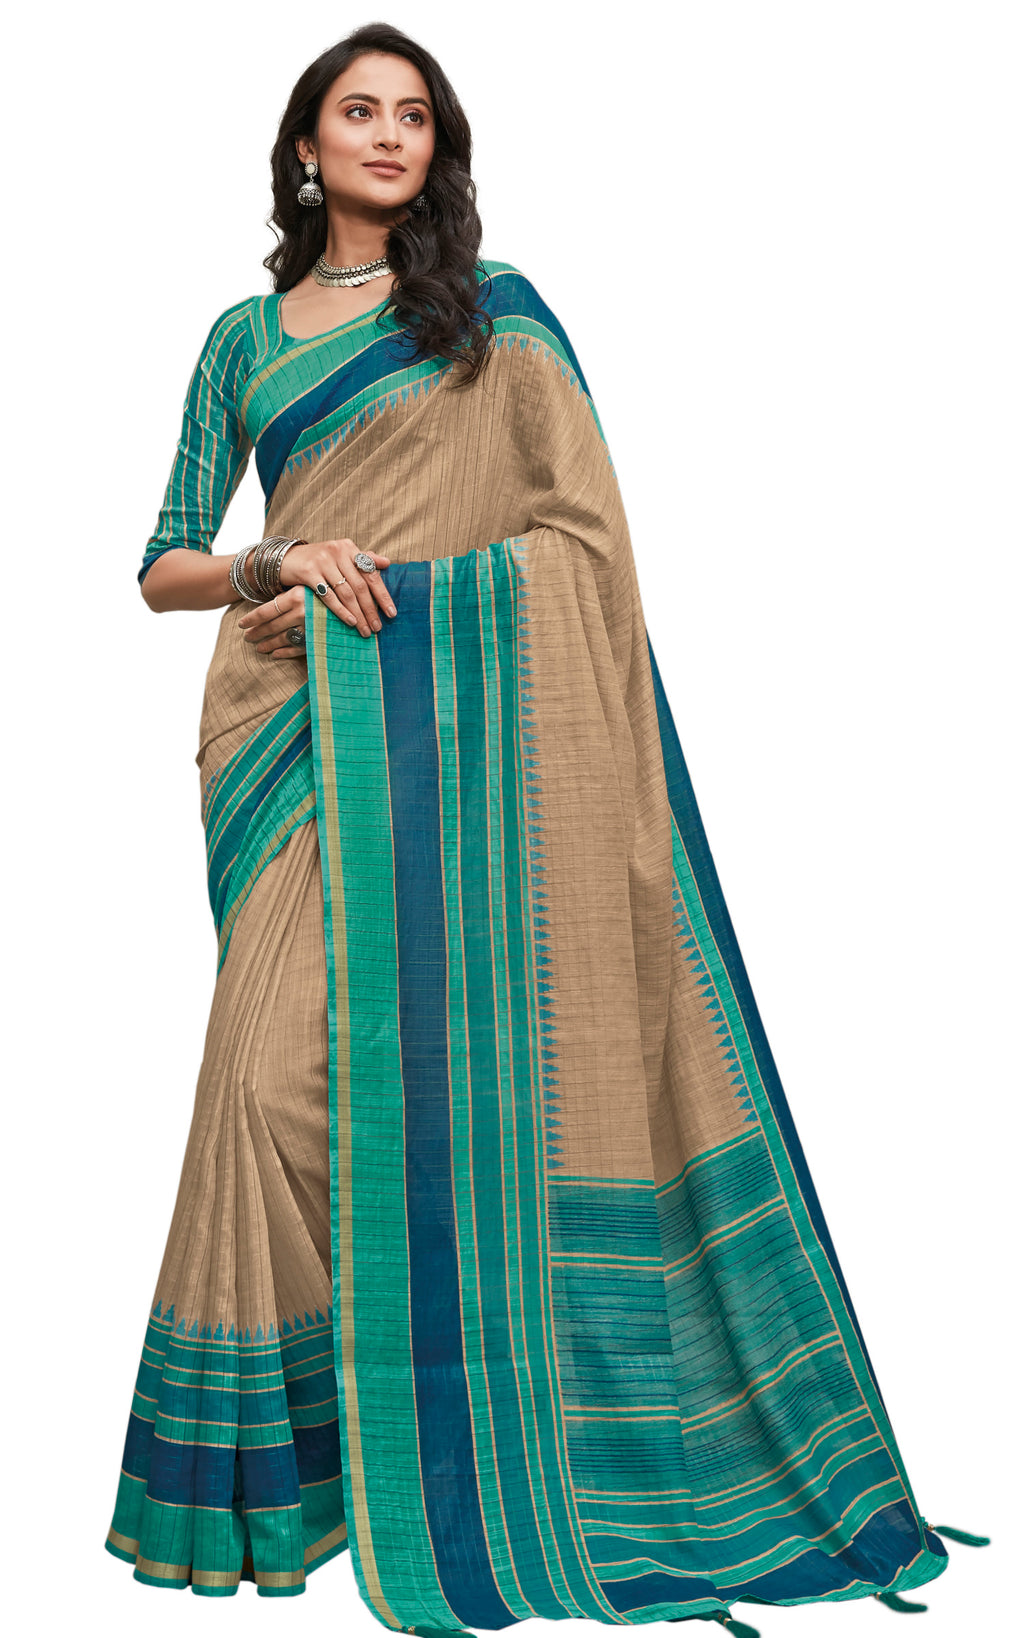 Beige Color Cotton Festive & Function Wear Sarees NYF-8499